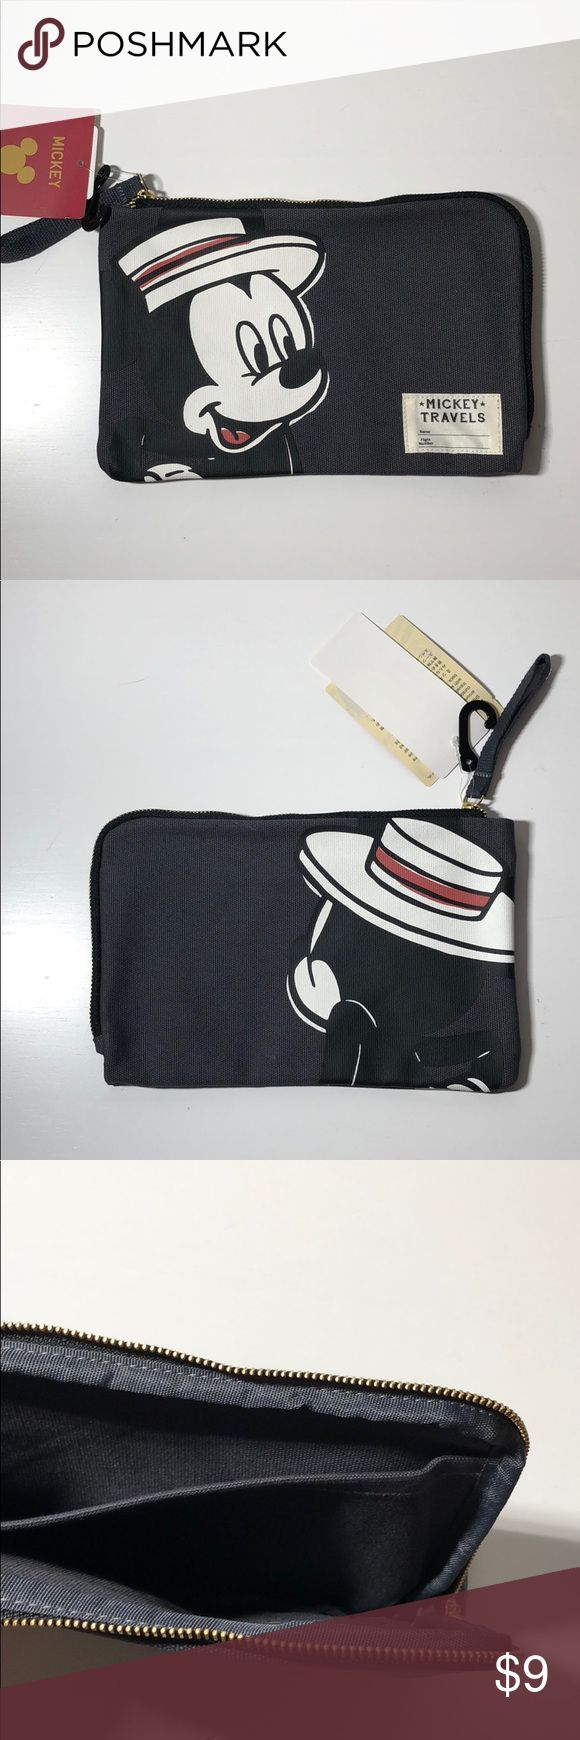 """Mickey """"Mickey Travels"""" bag This Mickey """"Mickey Travels"""" bag was purchased at Uniqlo. It is brand new with tag and super cute! It's about 8.5 inches in length and 5.5 inches in width. It also has an inside pocket. Uniqlo Bags Cosmetic Bags & Cases"""